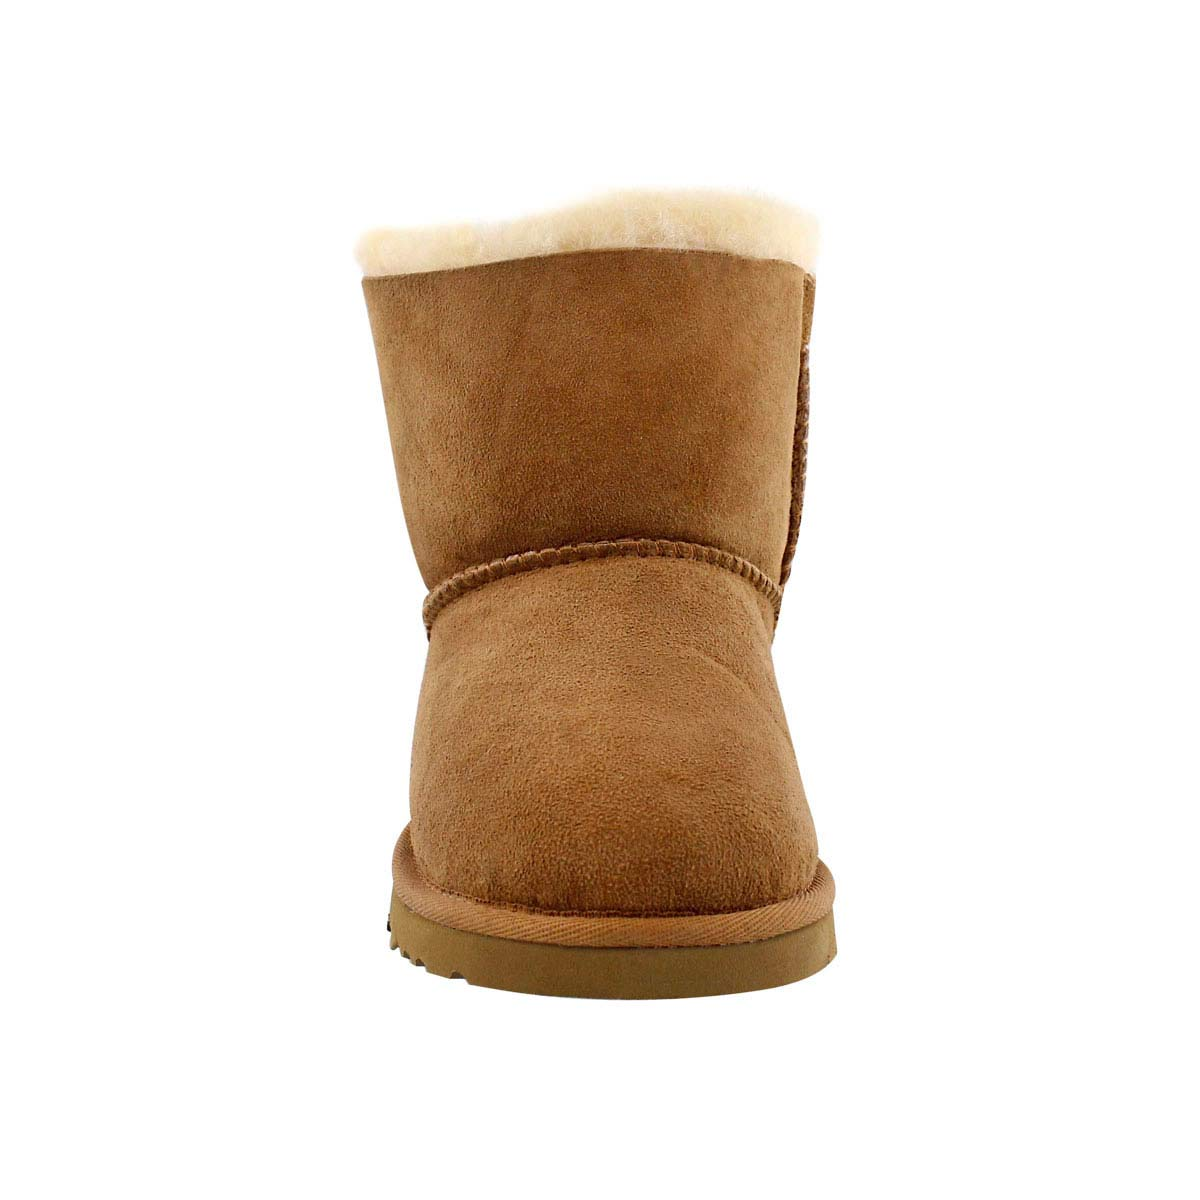 Grls Mini Bailey Bow ches sheepskin boot